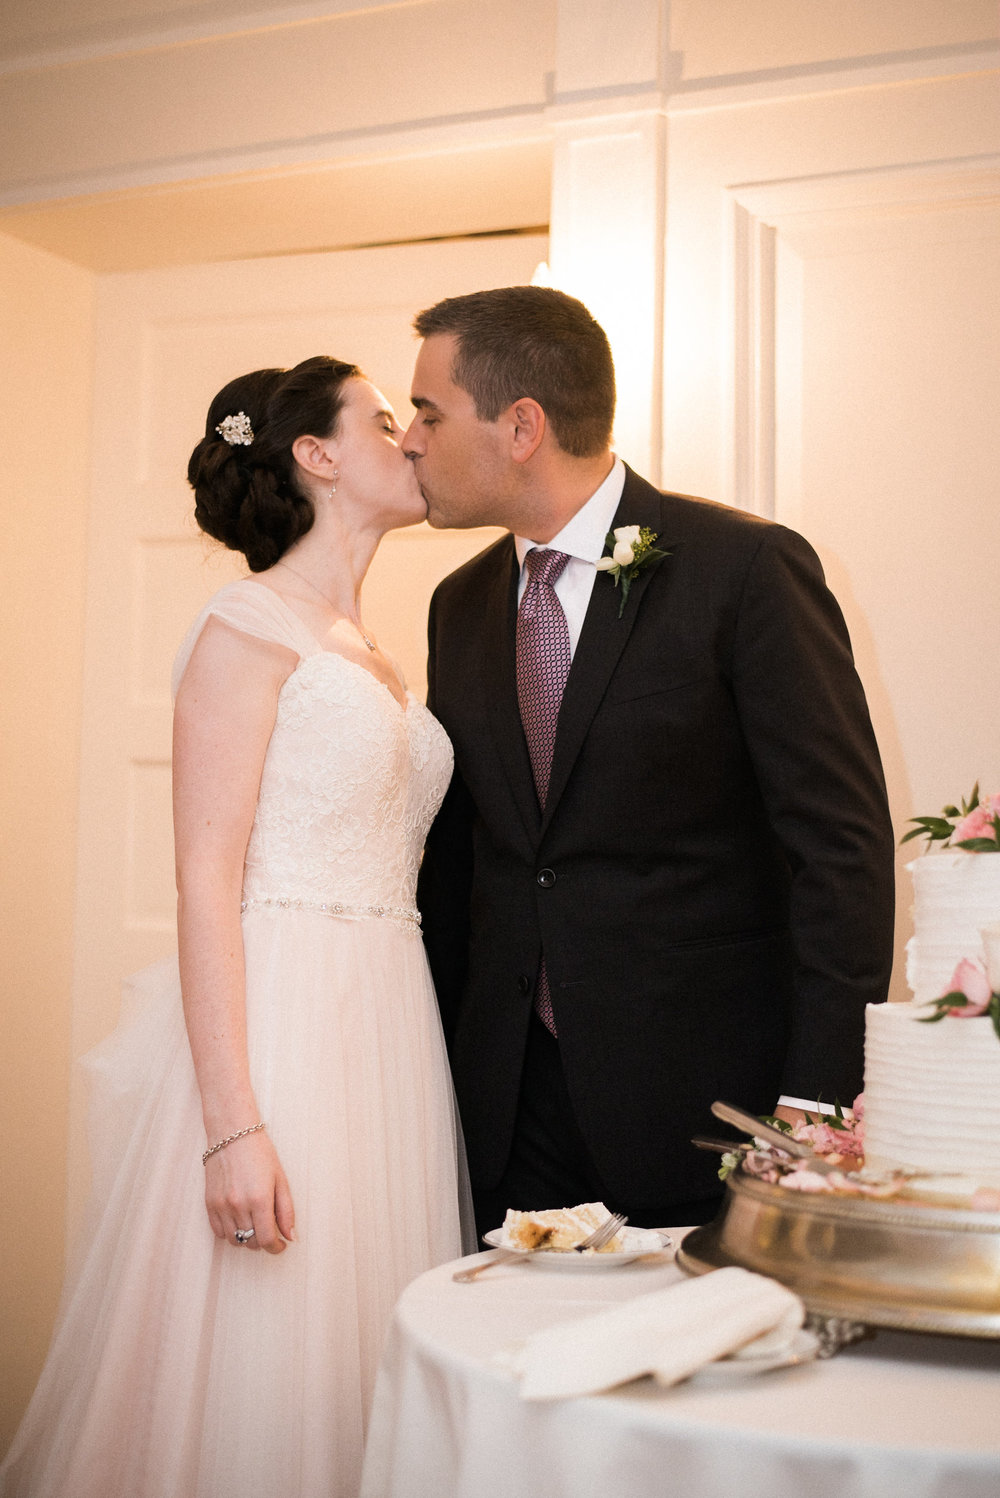 Bride and groom kissing beside cake